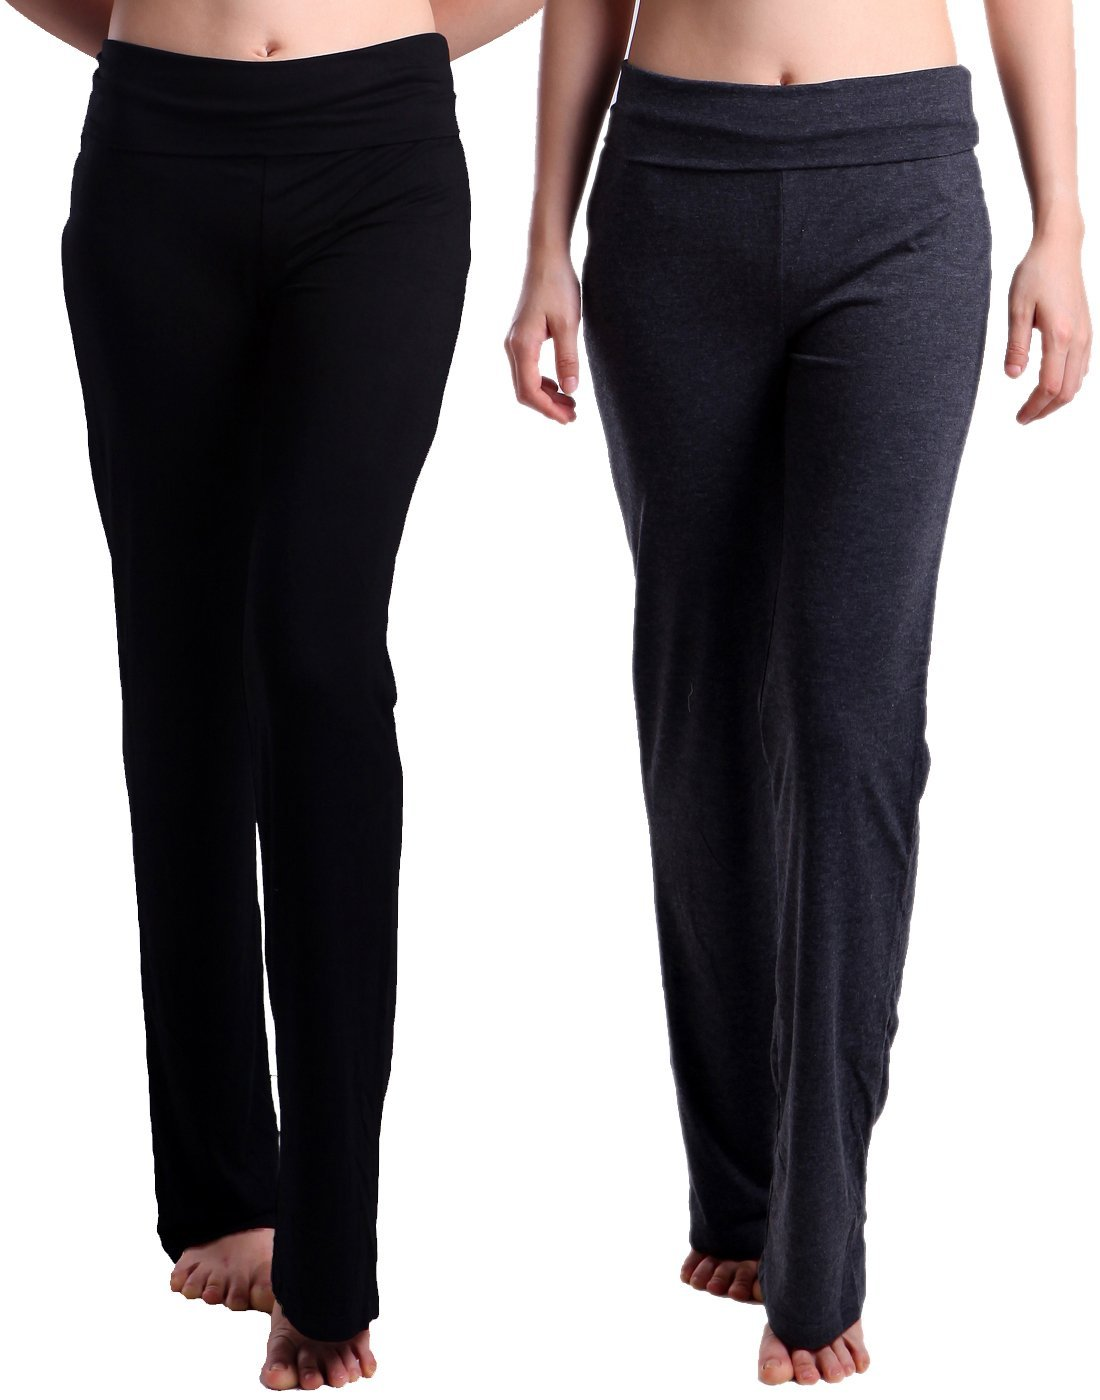 HDE 2-Pack Women's Maternity Yoga Stretch Pants Fit & Flare Foldover Pregnancy Leggings (Black& Charcoal Gray)